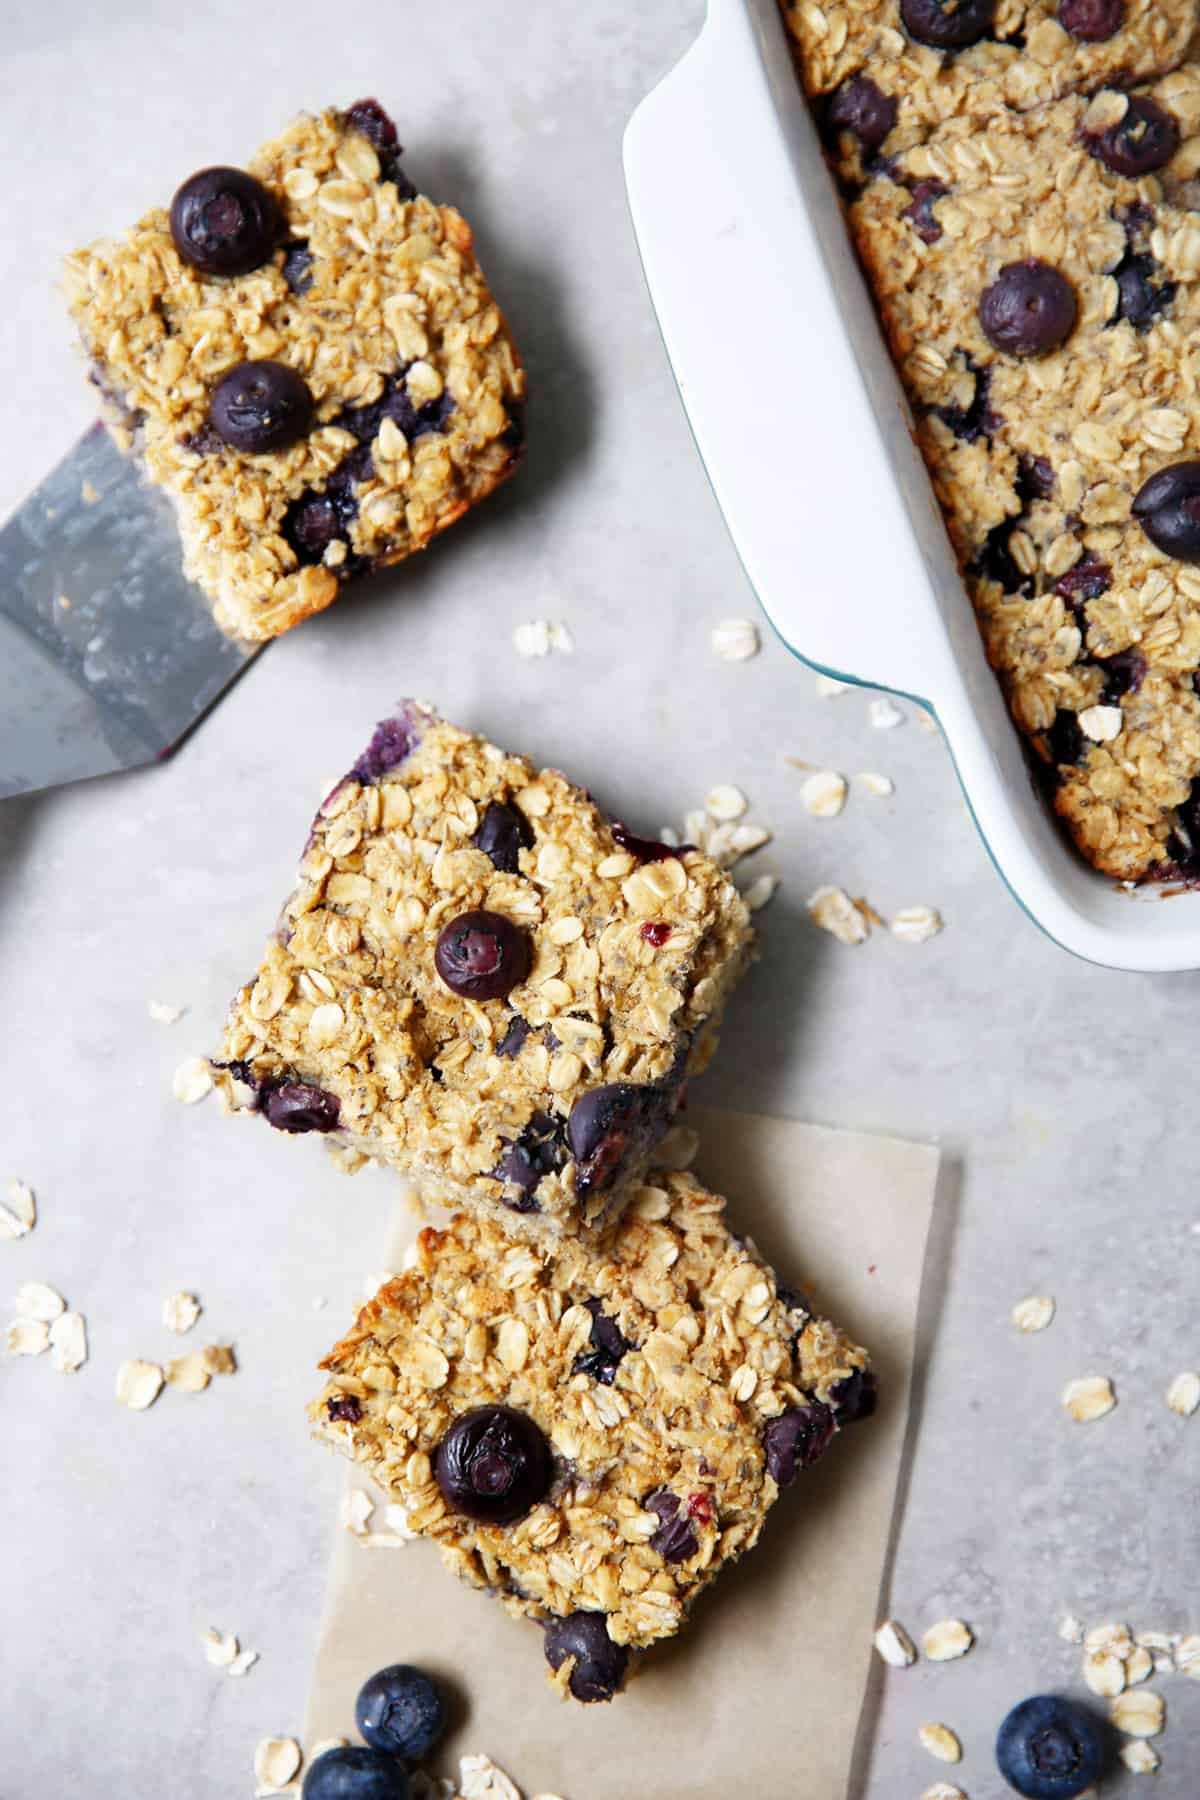 Make ahead baked oatmeal recipes